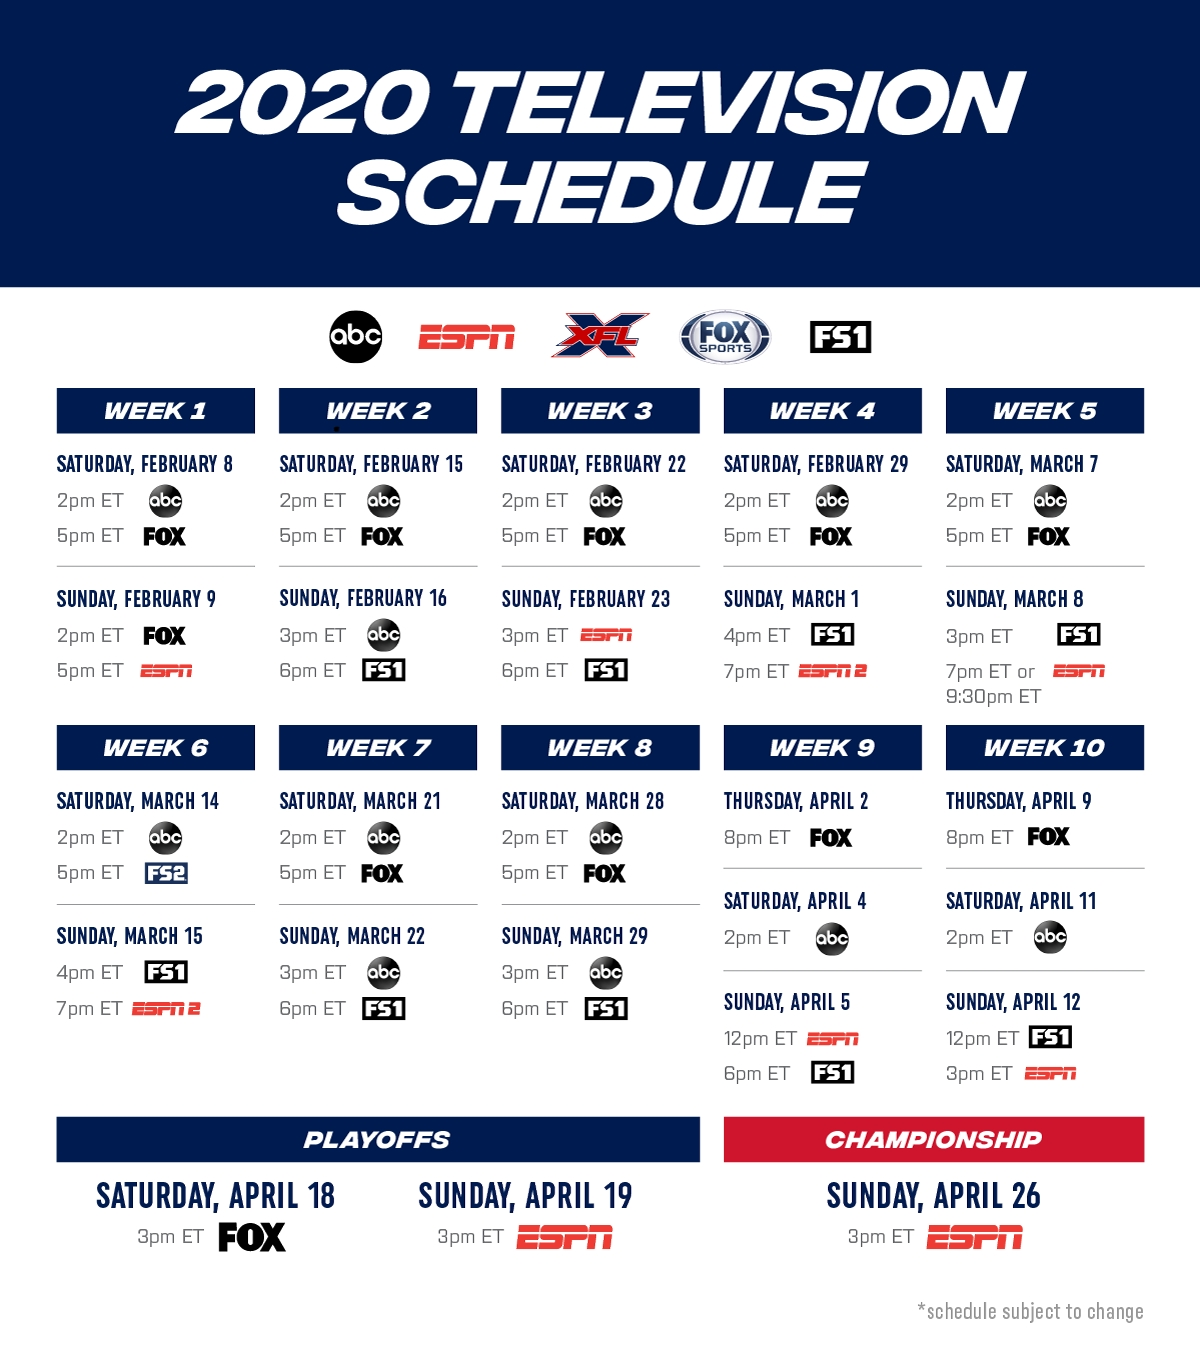 Xfl 2020 Television Schedule Review inside Printable Nfl 2019 2020 Schedule